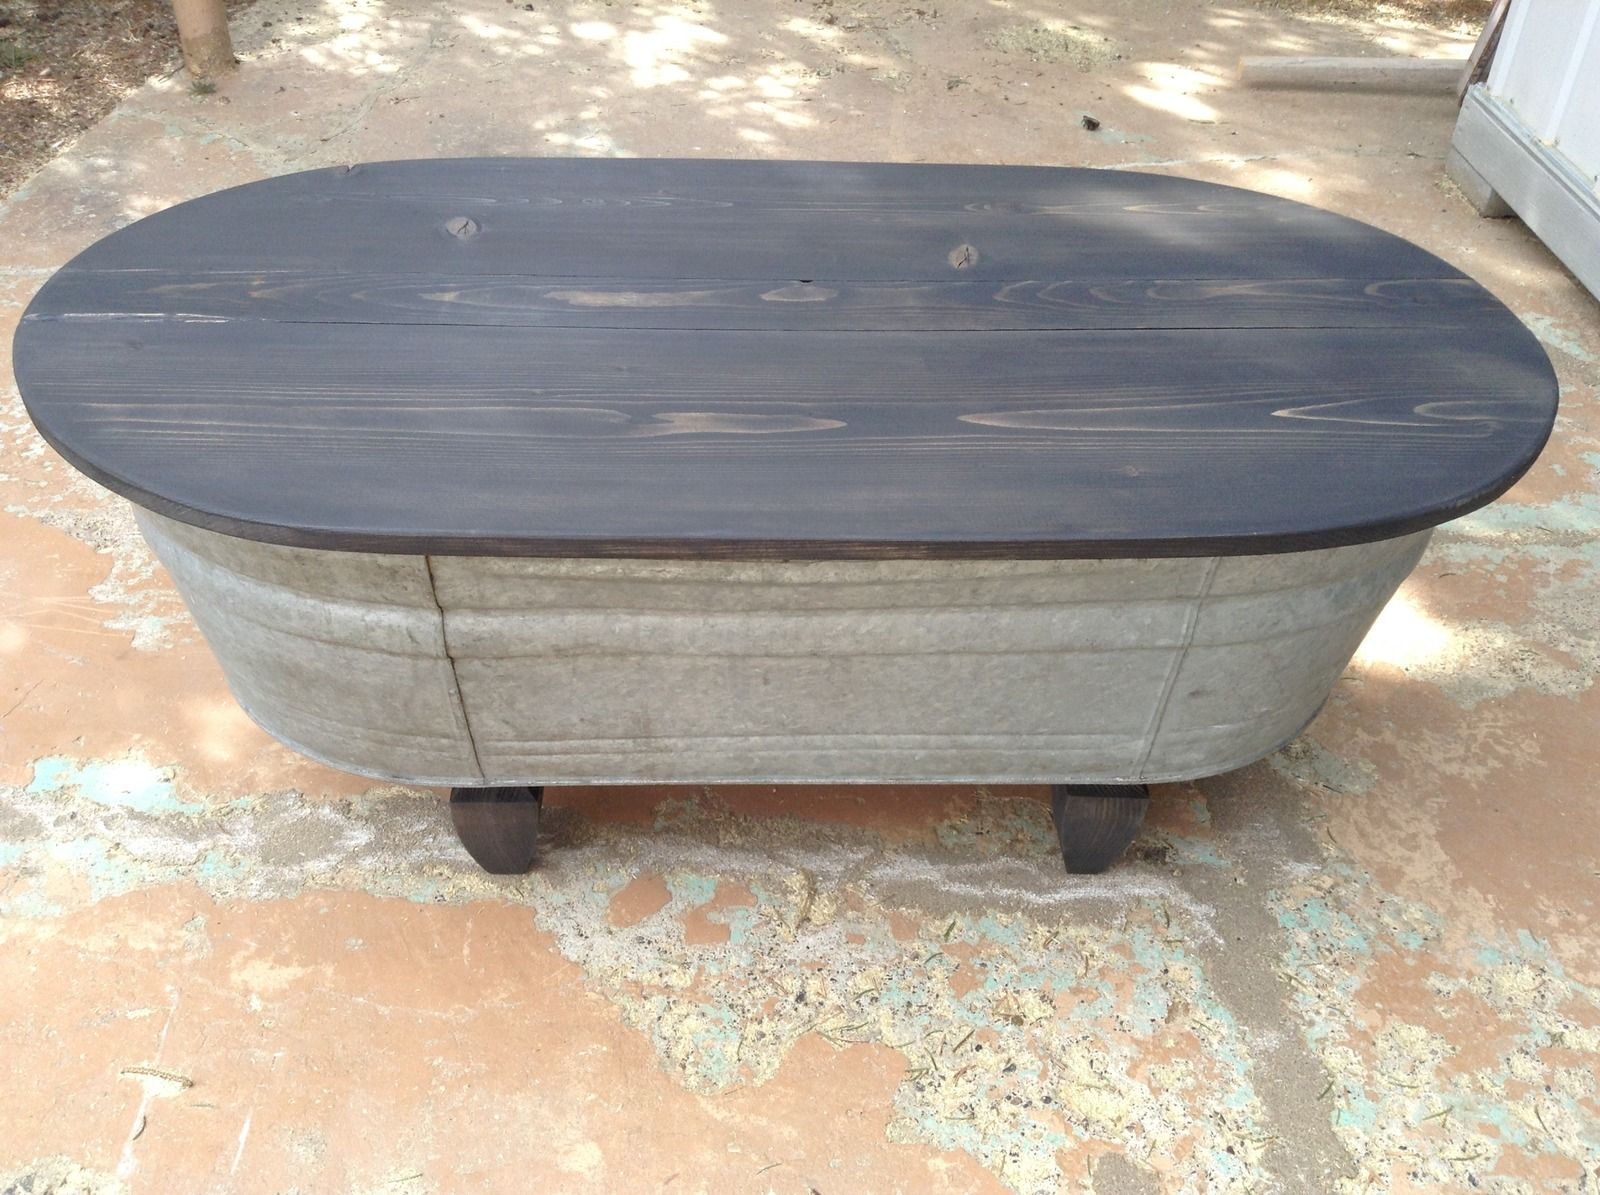 Repurposed Antique Oval Wash Tub Bench Coffee Table Can Deliver On 5 8 17 Only Dickinson Nd Outdoor Toy Storage Diy Coffee Table Diy Coffee Table